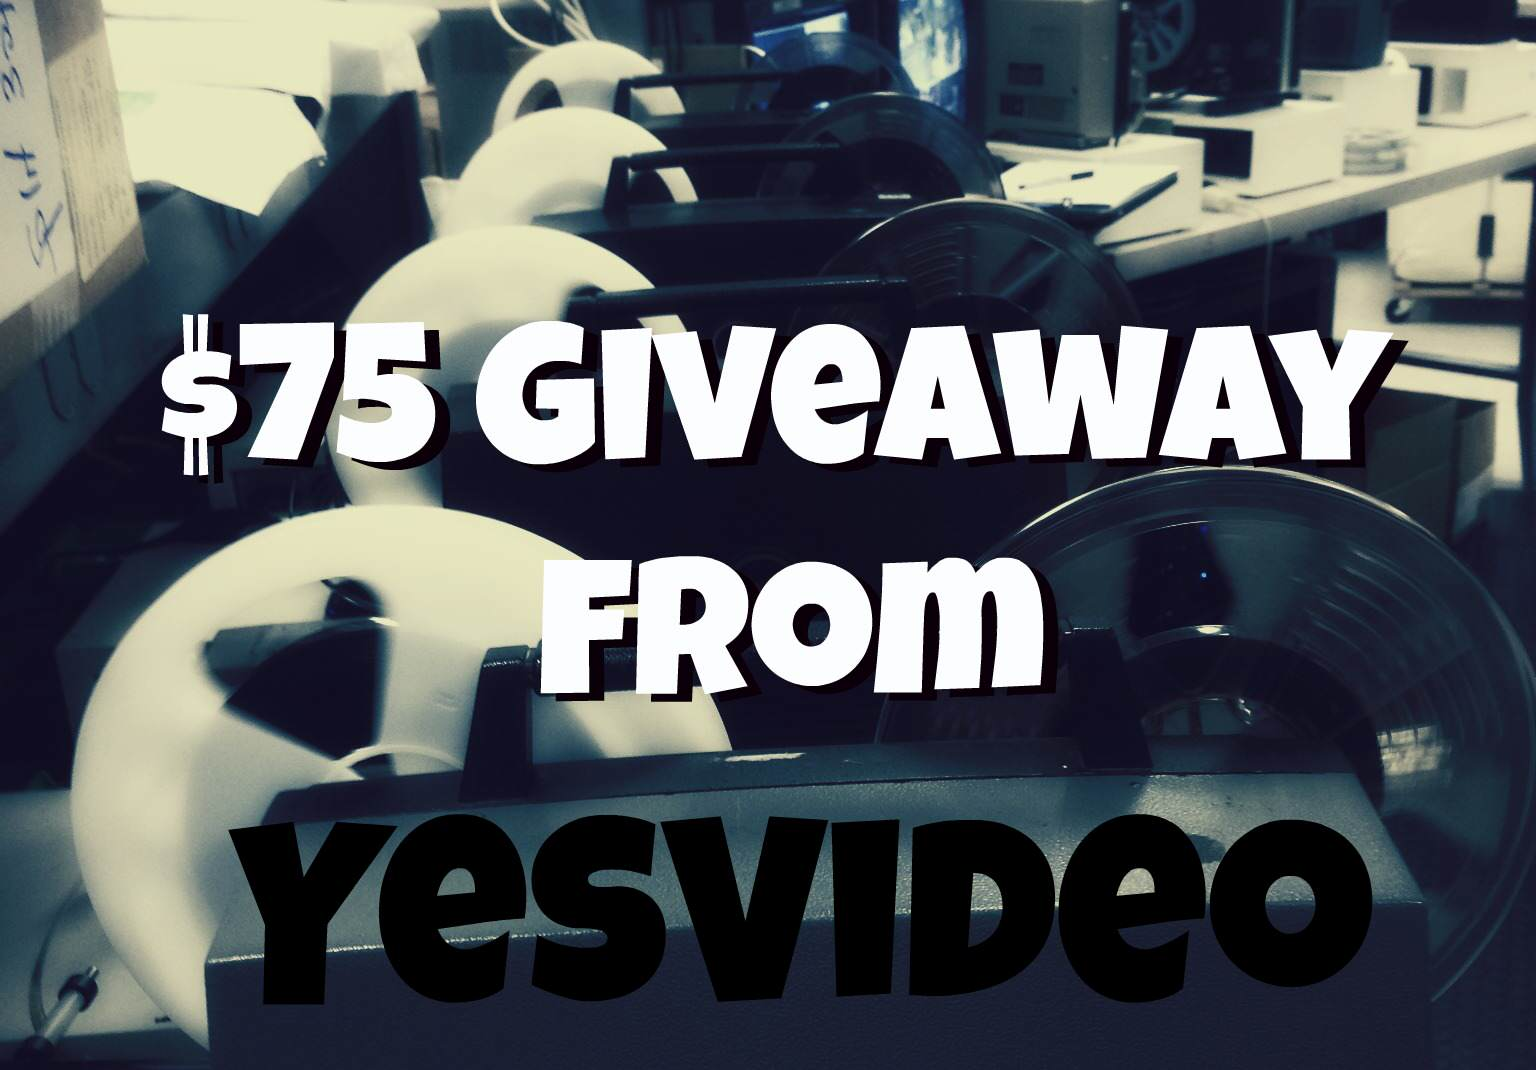 YesVideo Giveaway